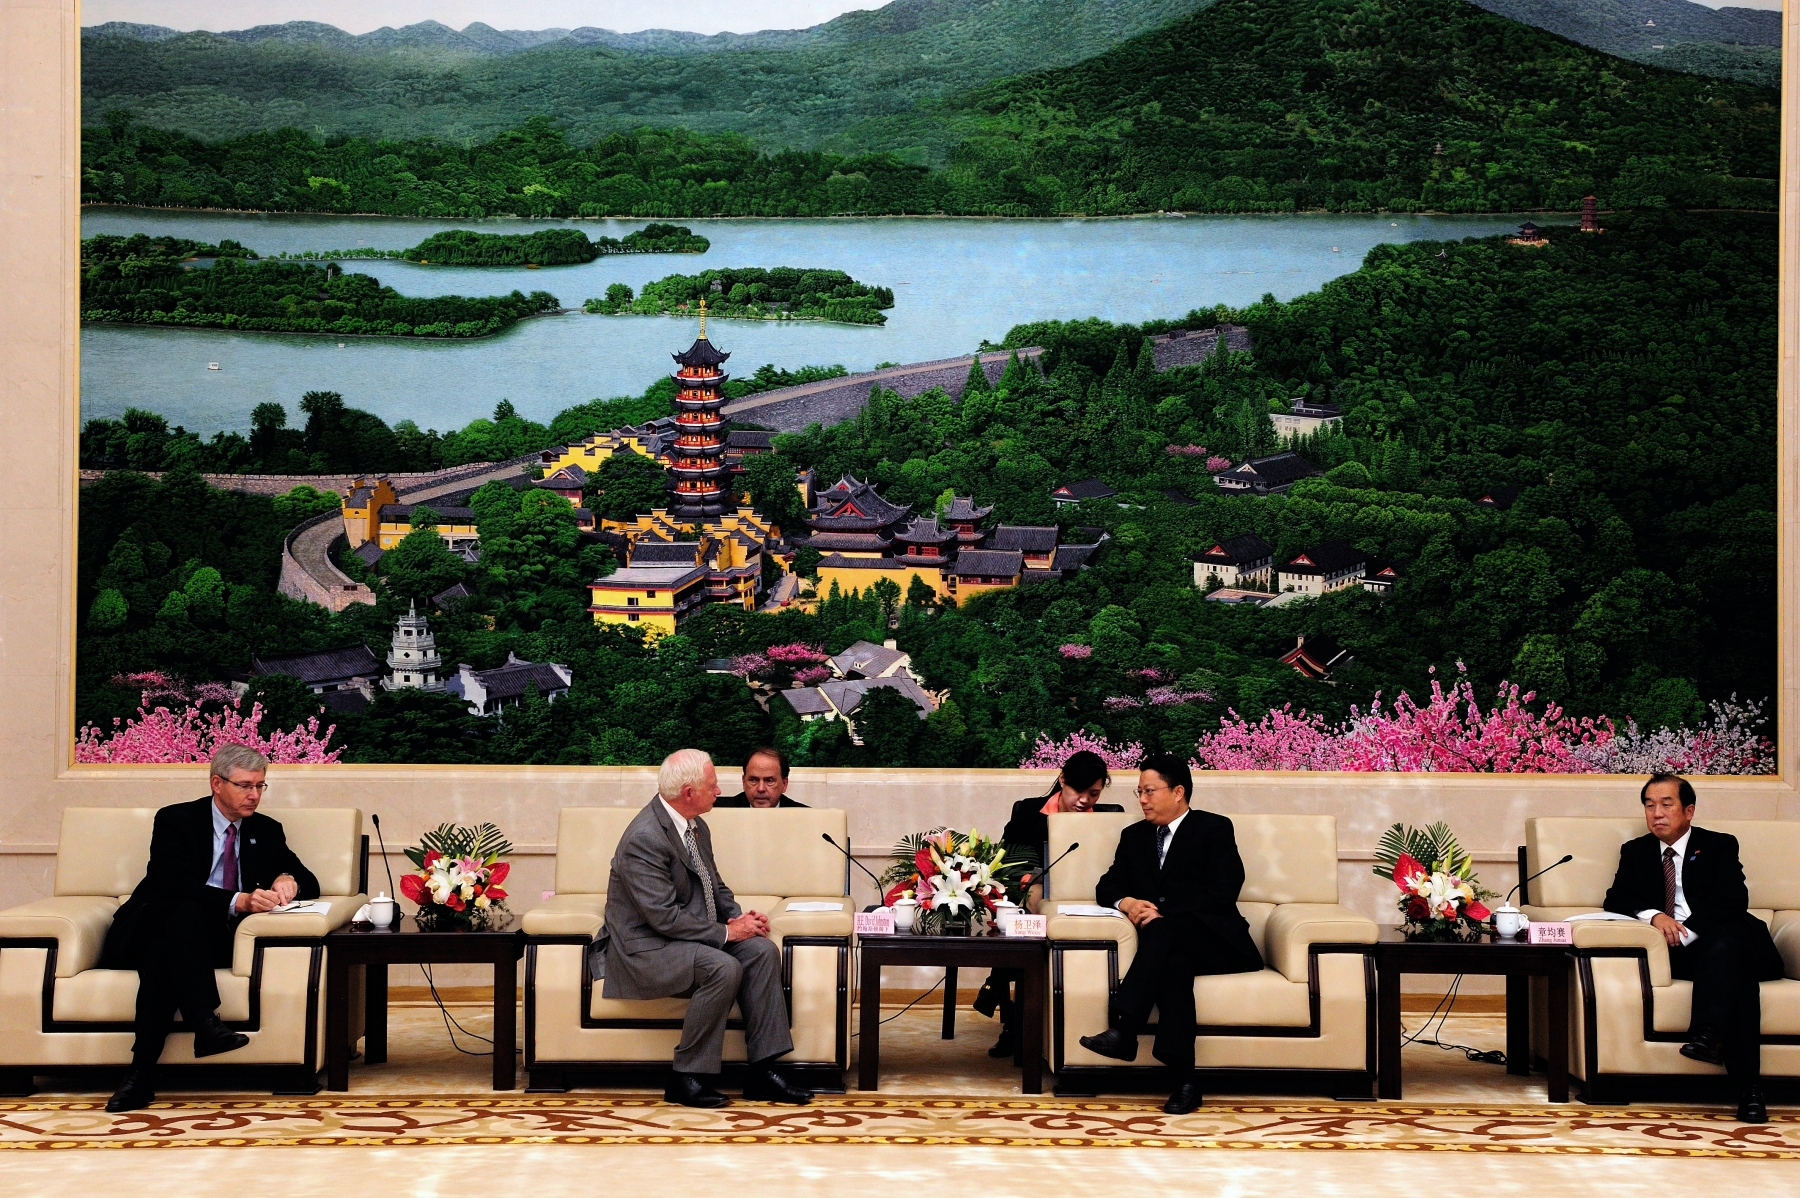 Later that day, the Governor General met with His Excellency Yang Weize, Party Secretary of Nanjing, to discuss Canada's continued engagement in China.